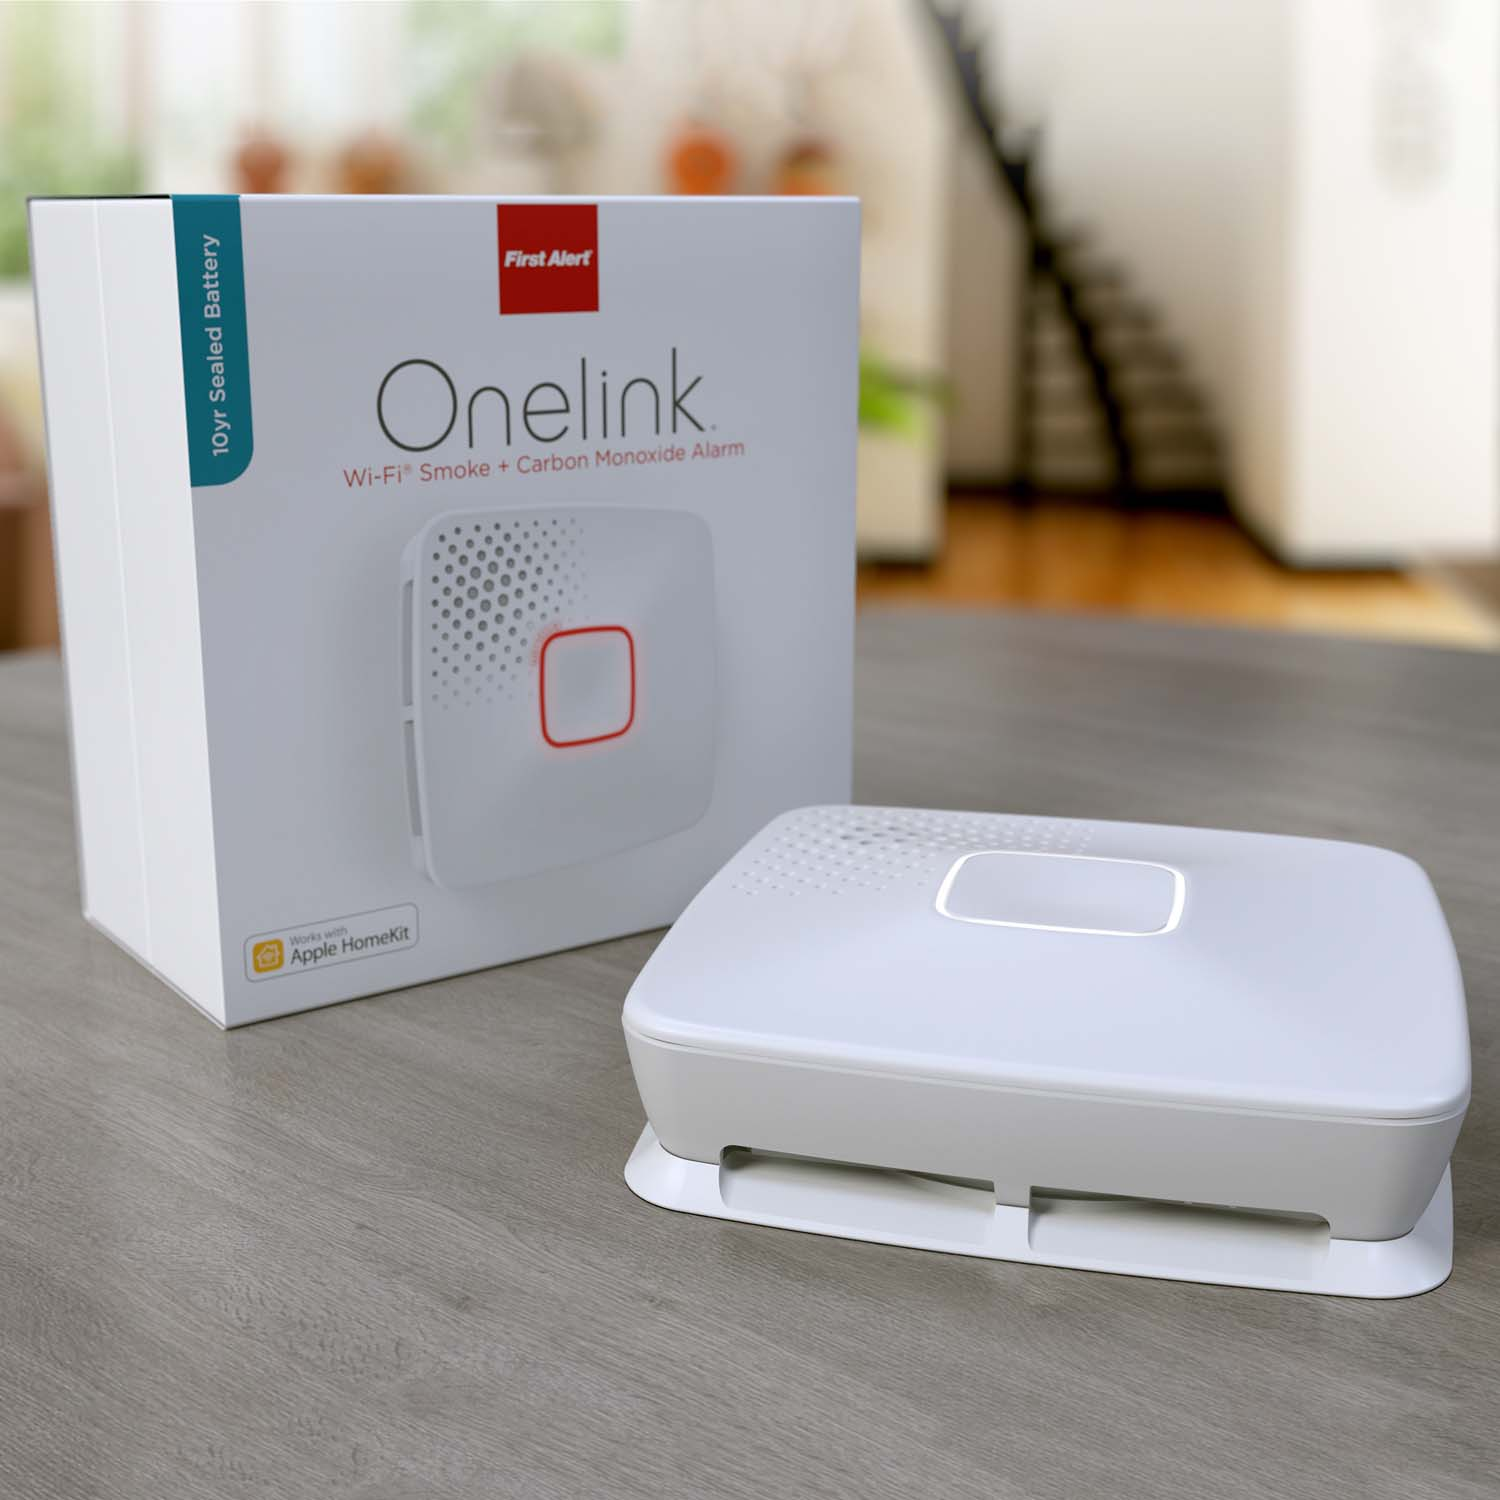 Onelink By First Alert 174 Brings Common Sense To The Smart